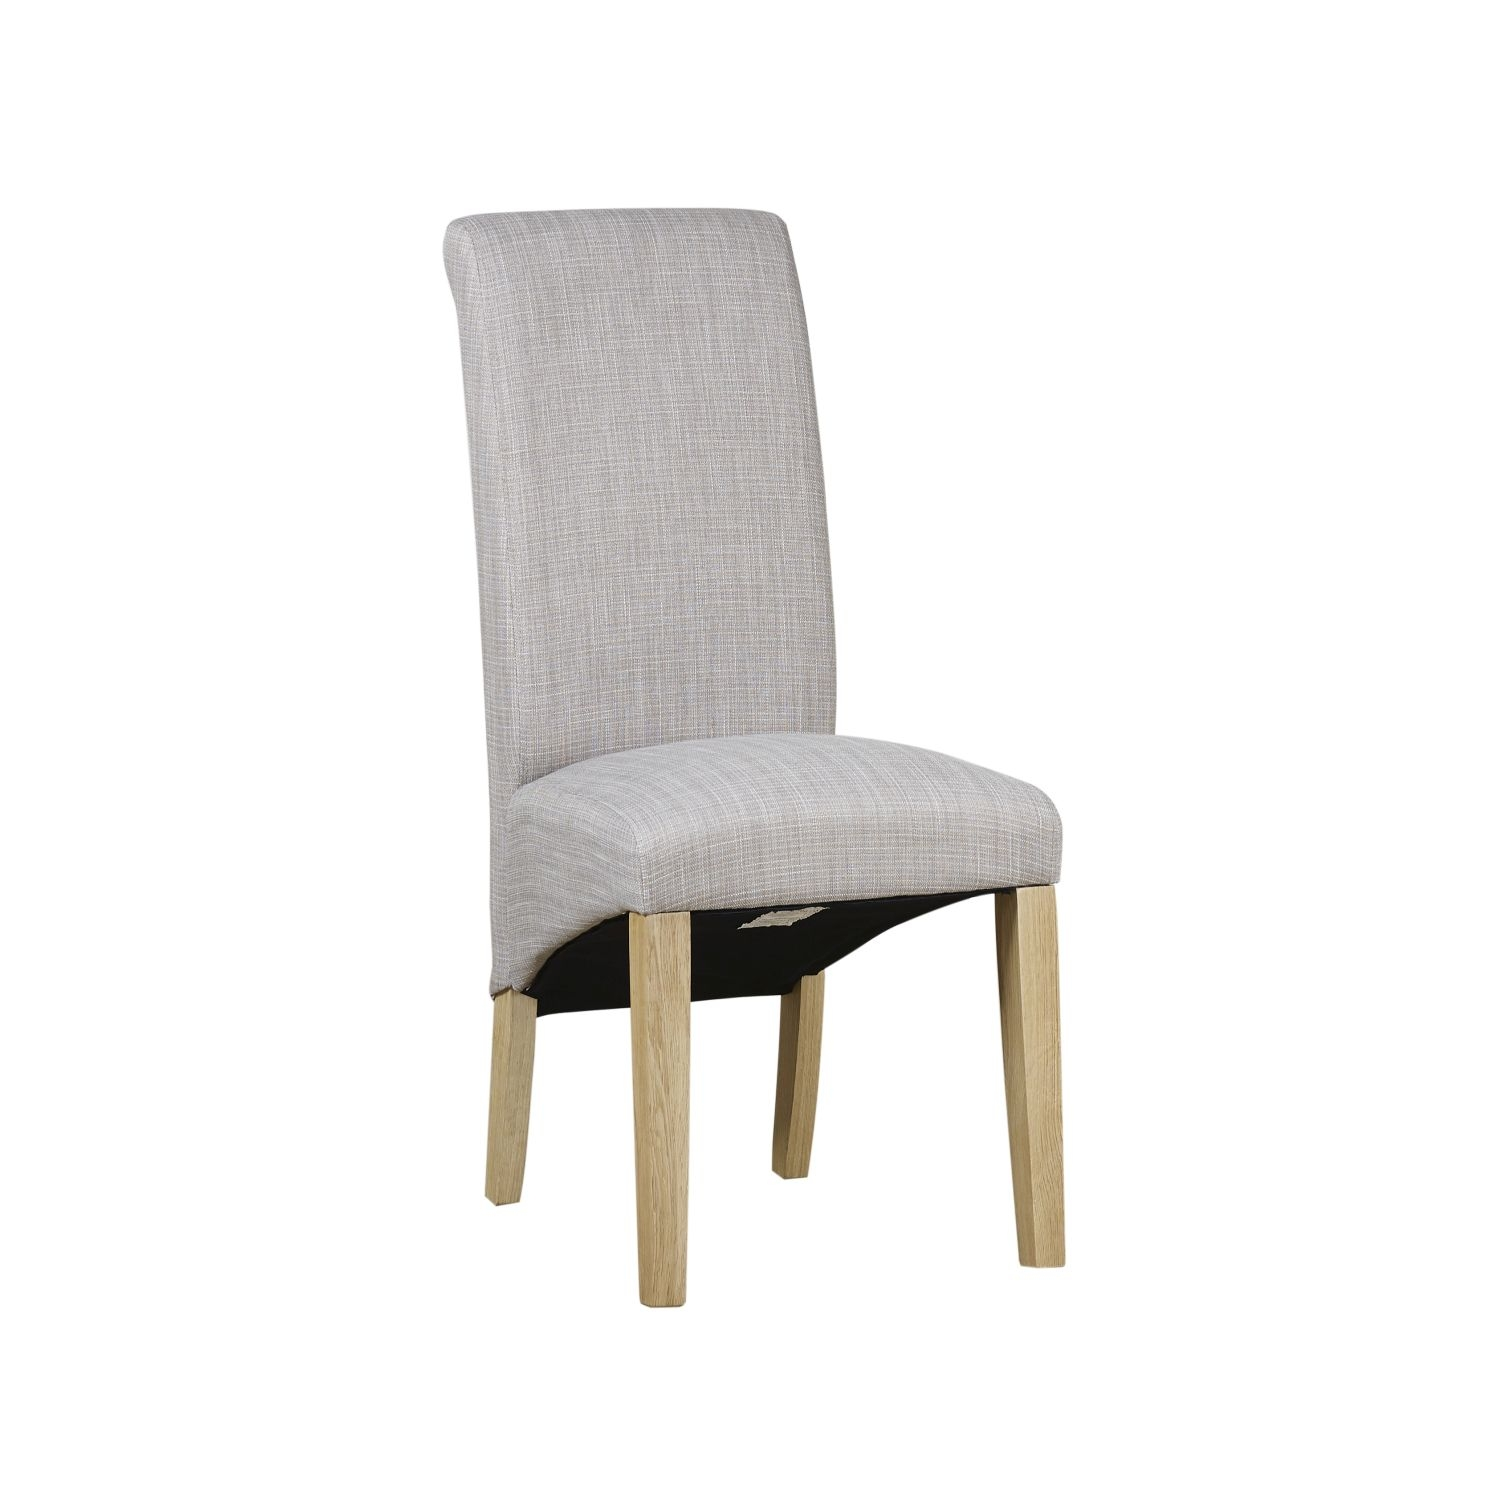 Image of Casa Wexford Scrollback Dining Chair